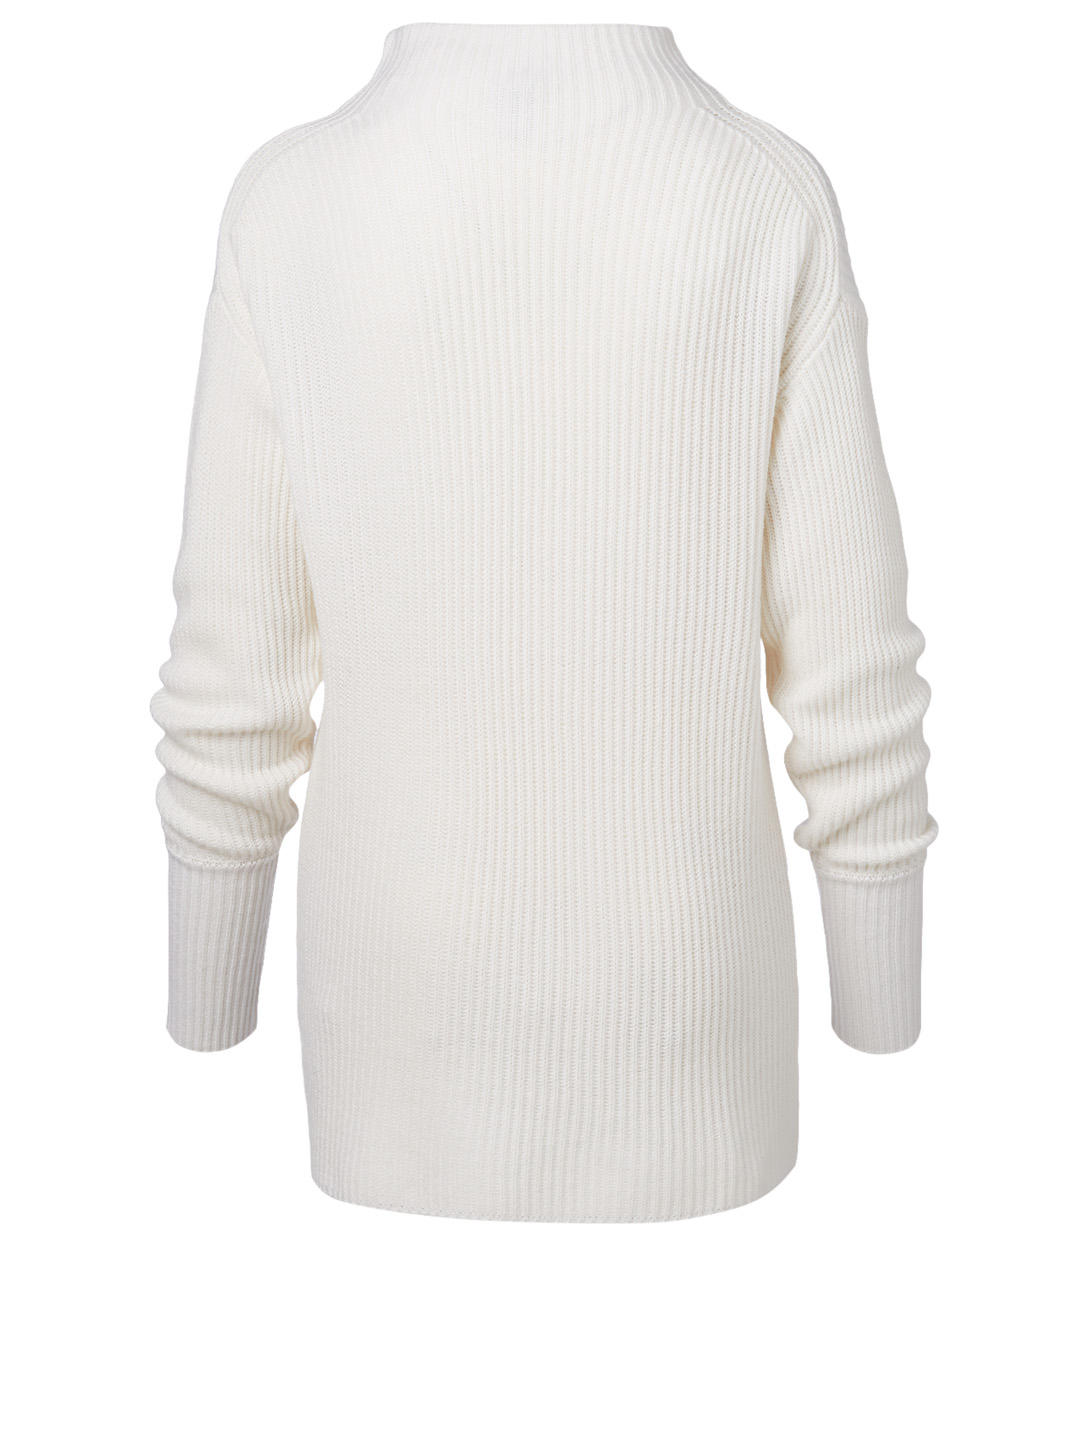 VARLEY Collins Ribbed Mockneck Sweater Women's White